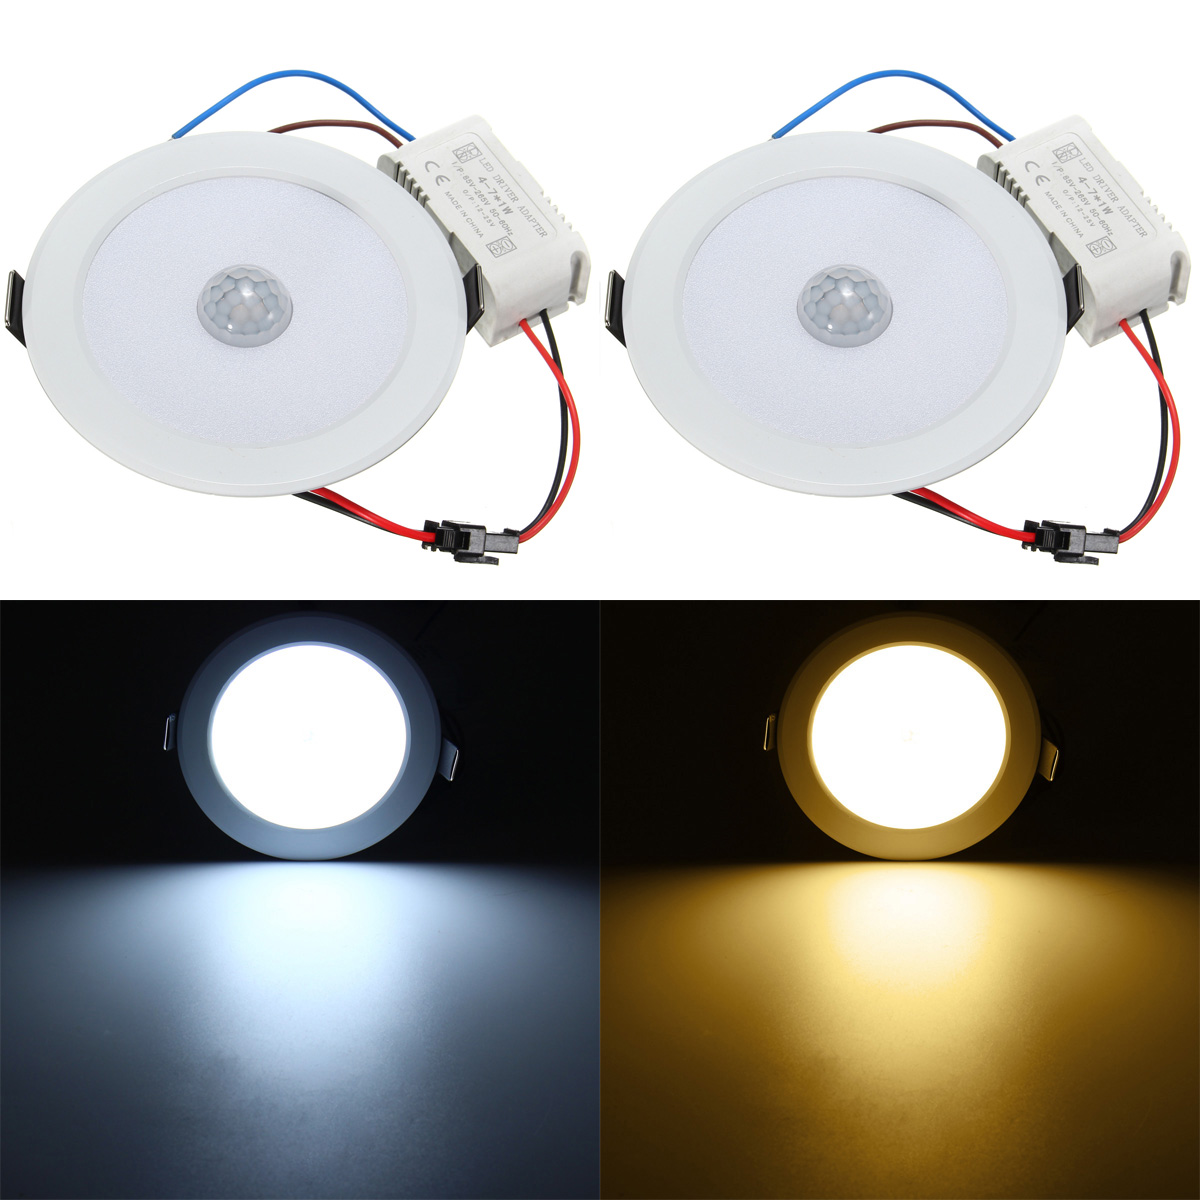 E27 House Motion Sensor Ceiling Light 5730 SMD AC 85-265V LED Night Lamp Warm White Hallway Indoor Lighting zhishunjia s030 5w 300lm 3000k 2835 smd 20 led warm white light ceiling lamp silver ac 85 265v